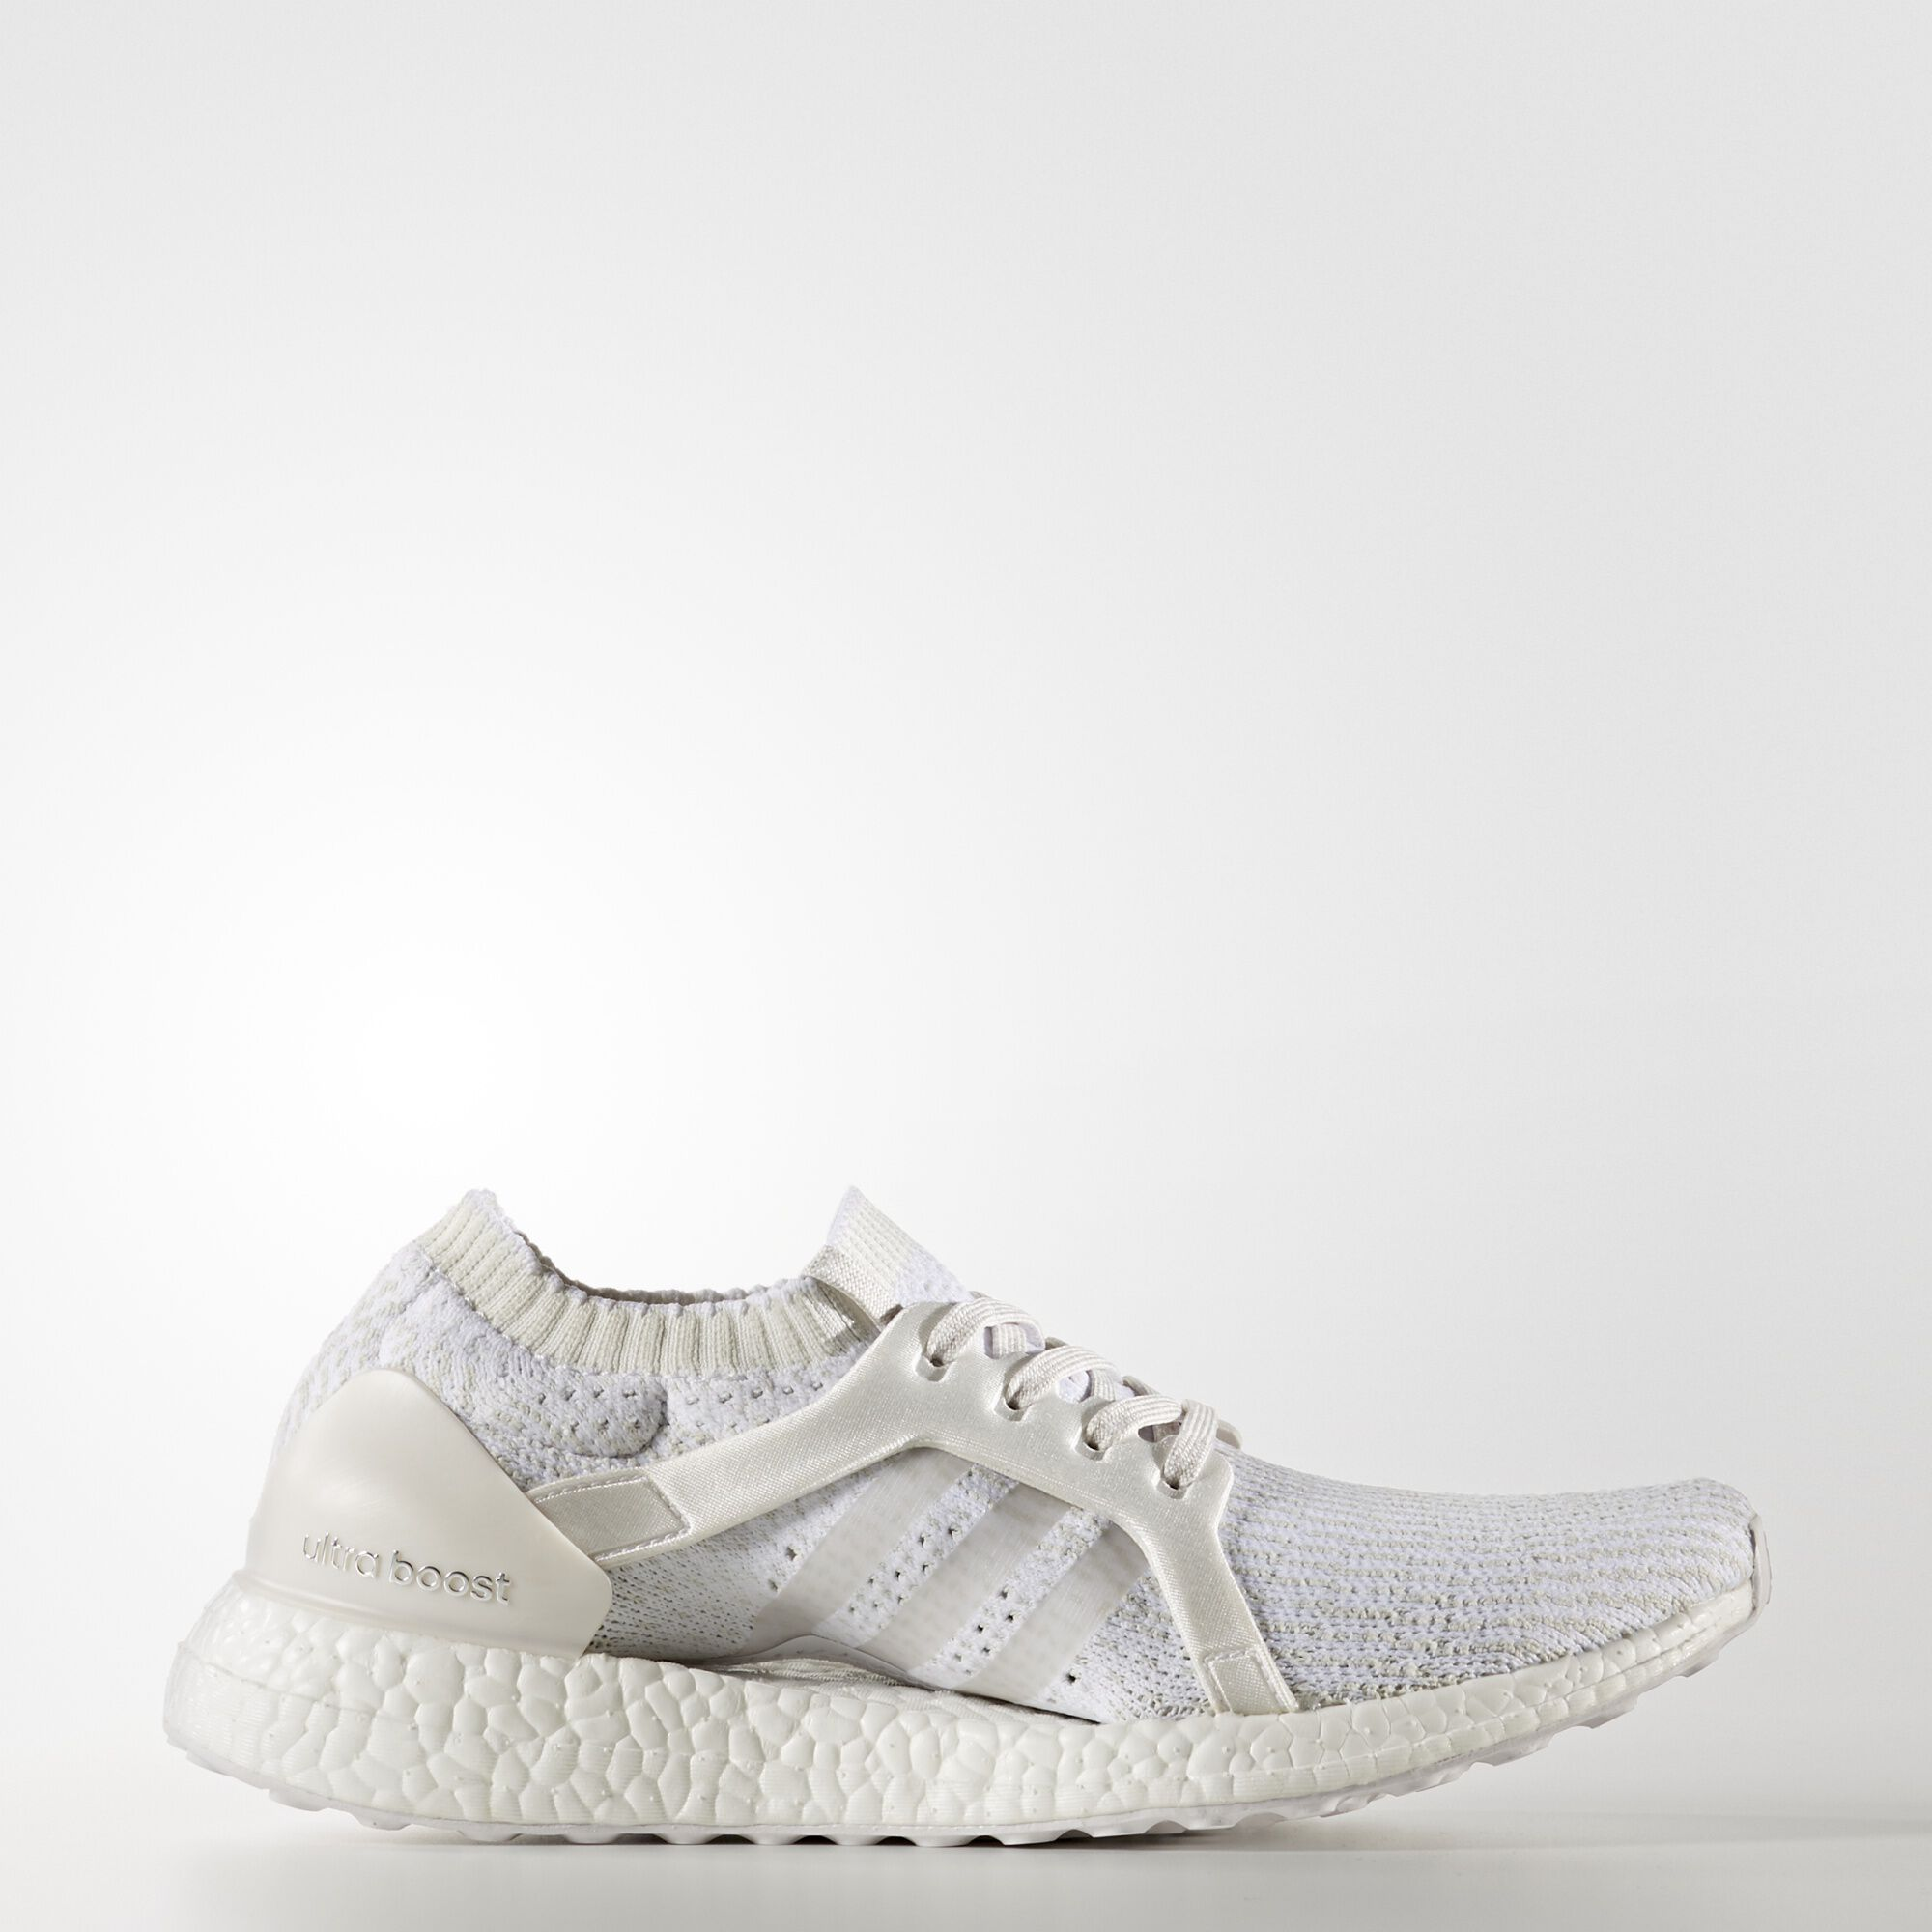 adidas boost shoes women's